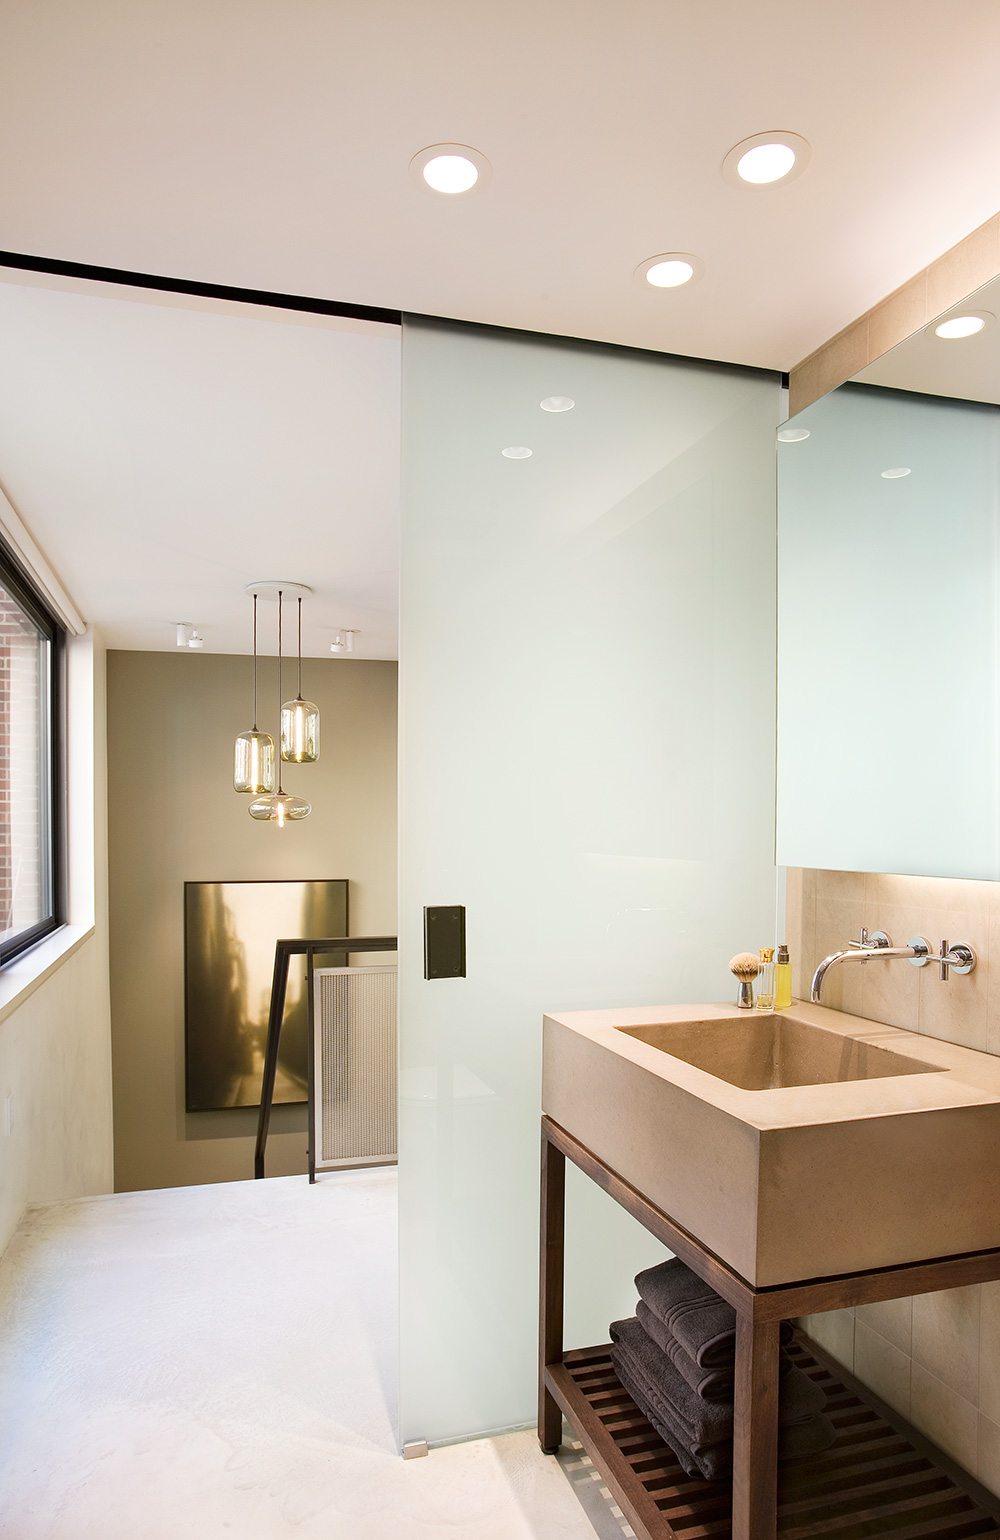 New York residence featuring a sleek and minimal bathroom